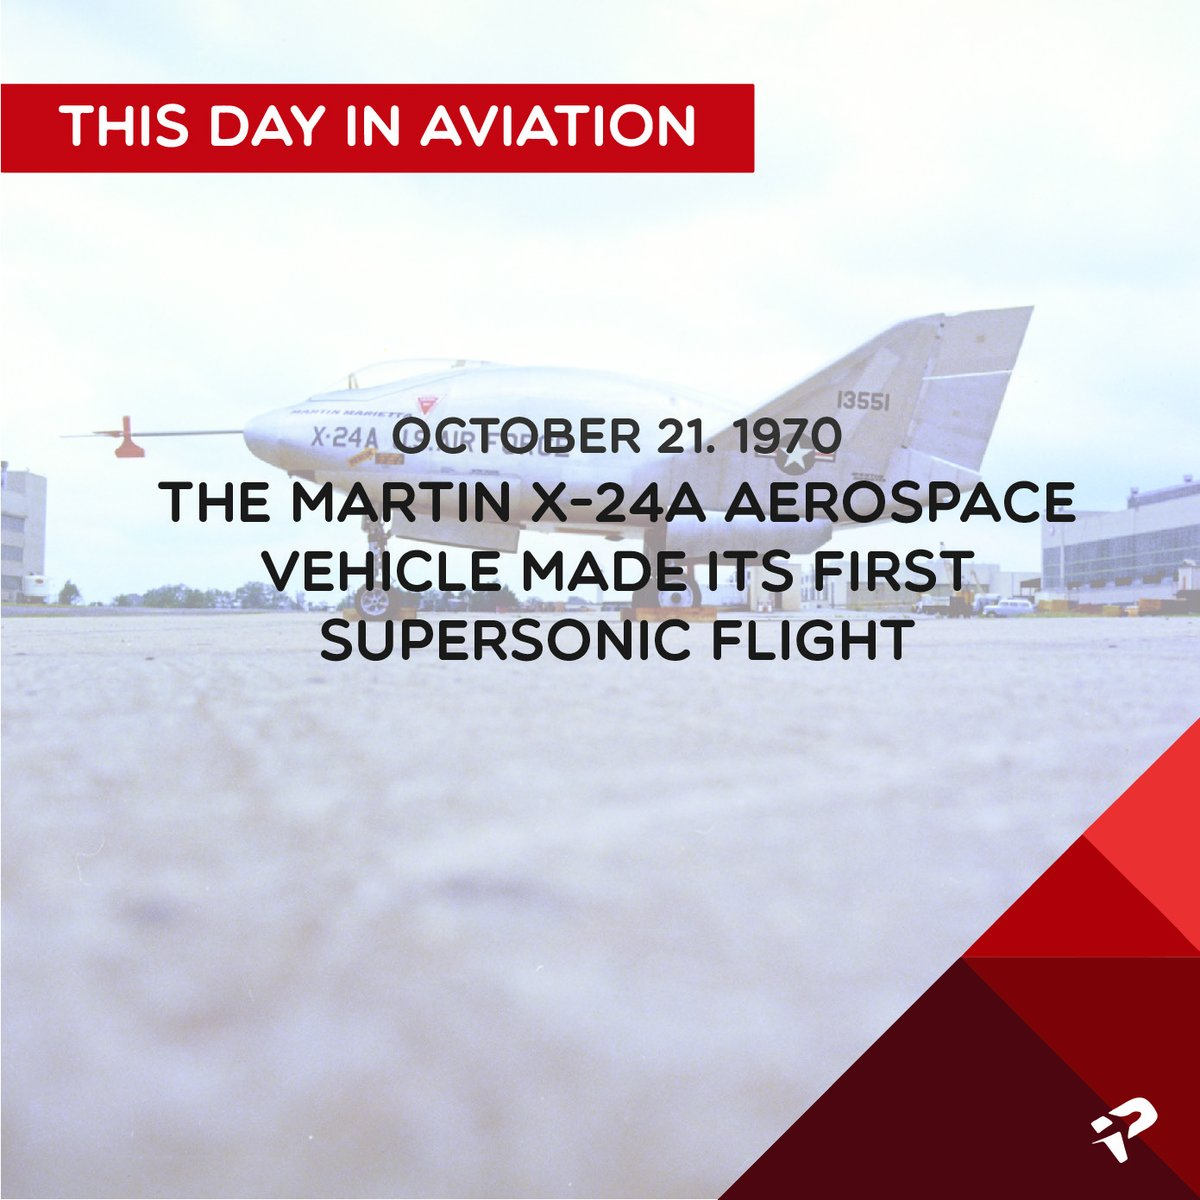 October 21, 1970 (USA): The Martin X-24A aerospace vehicle makes its first supersonic flight.  #AviationTrivia #Aviation #AviationFacts #AviationDaily #AviationLover #ProdigyAviaSolutions #AviationHistory https://t.co/aoiJ9lzxow